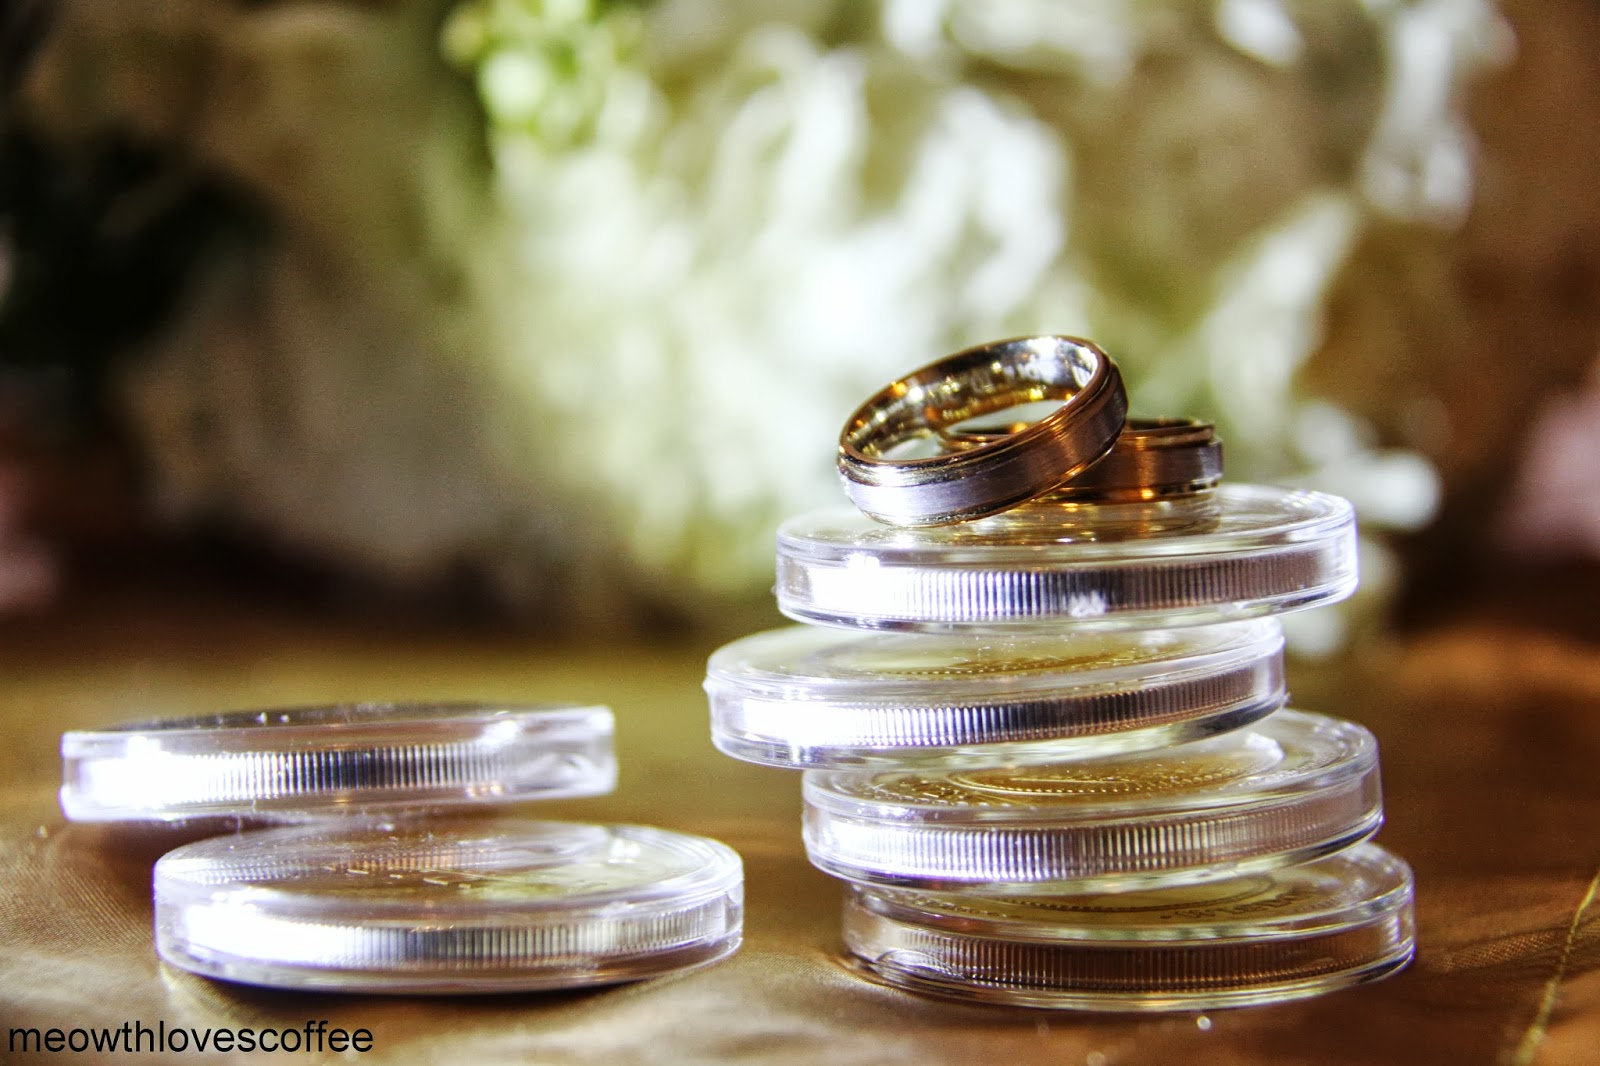 Gold And Silver Plated Arrhae Aras By Endless Treasures In Filipino Catholic Weddings Traditionally Symbolizes Prosperity